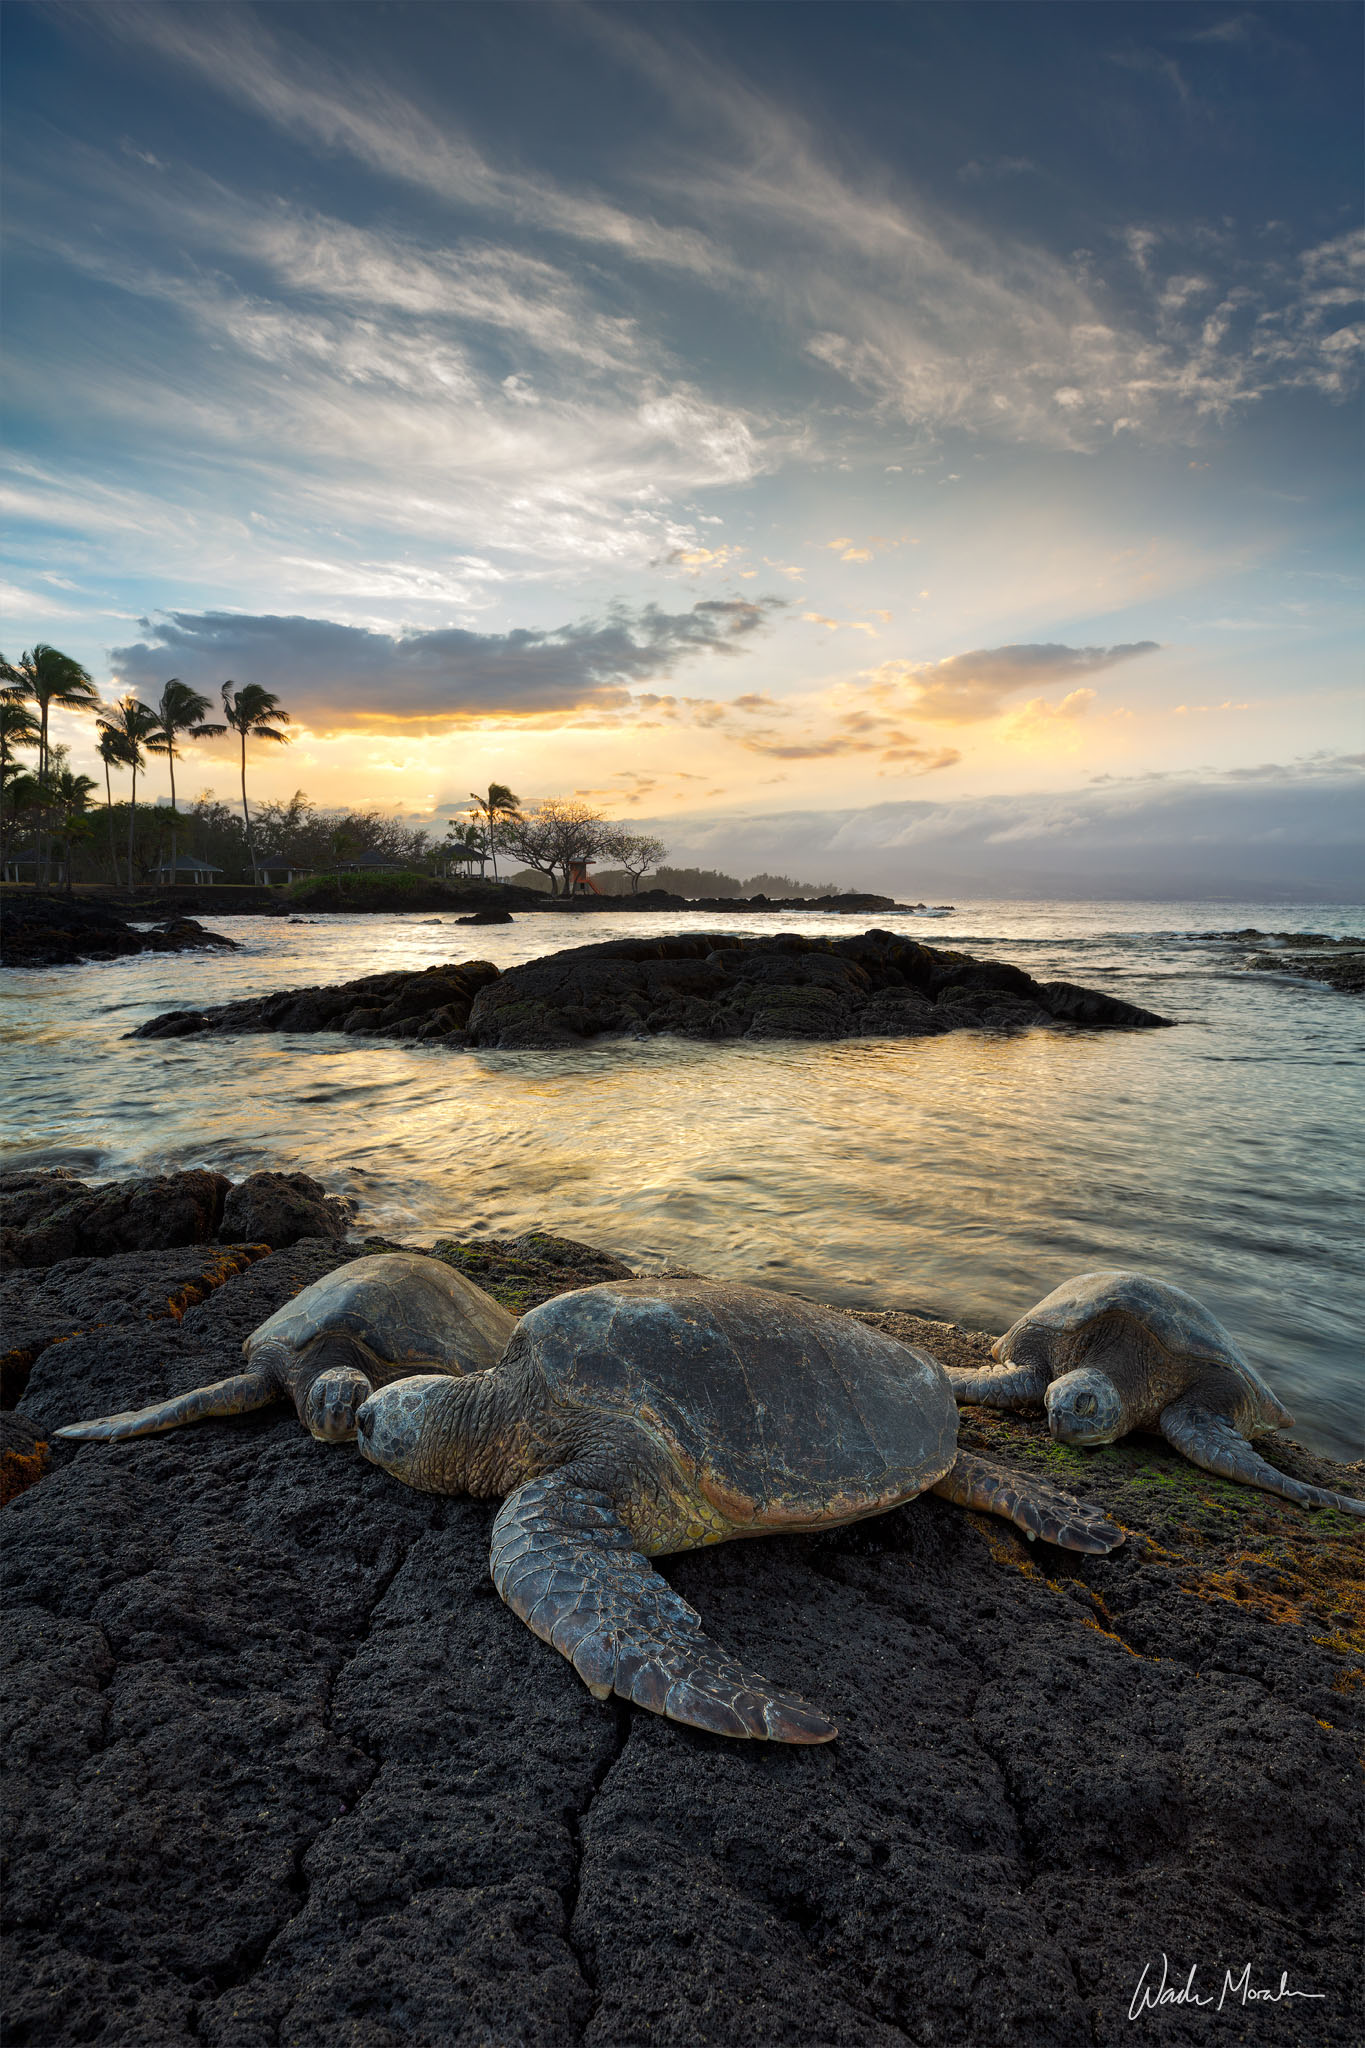 In this image, I photographed 3 beautiful honu (hawaiian green sea turtles) resting after a long day in paradise. This image...